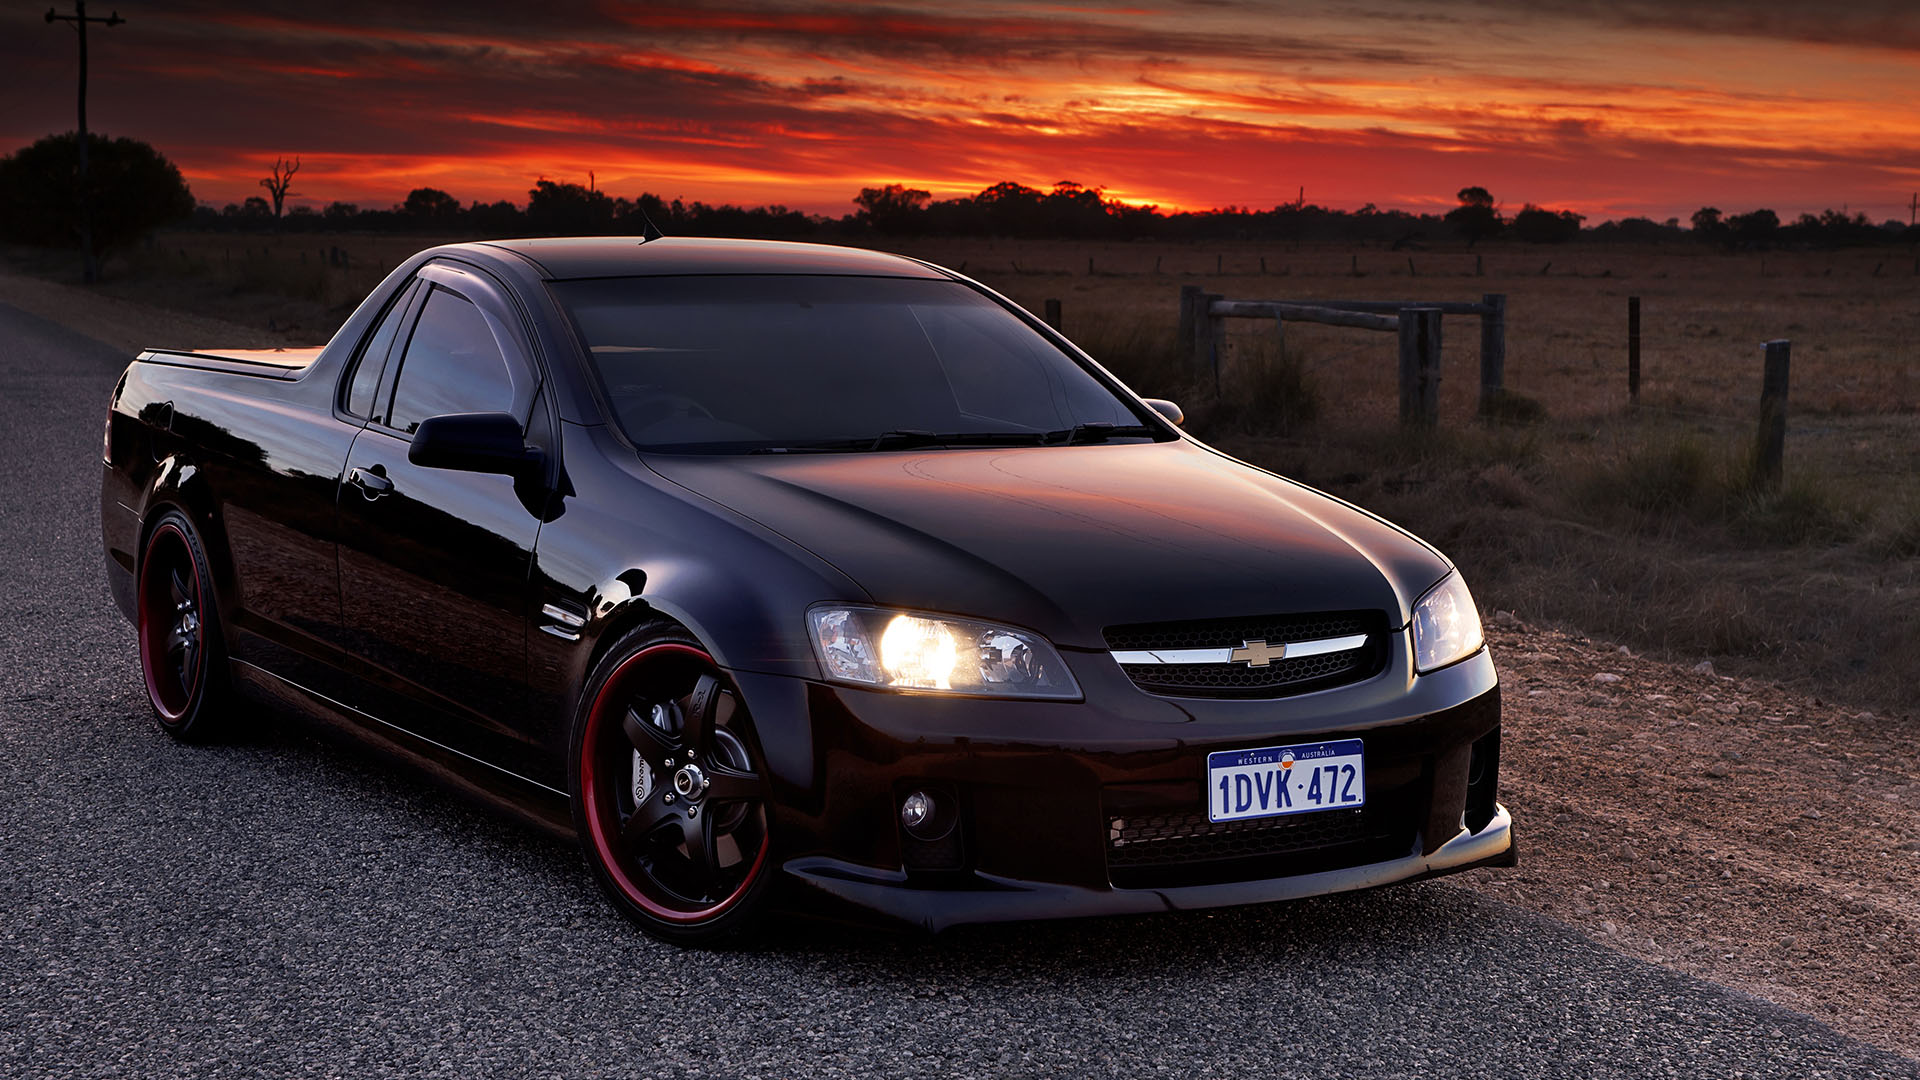 Car of the day – Chevrolet Lumina SS UTE 6.0-liter V8 270 kW 1920×1080 HD